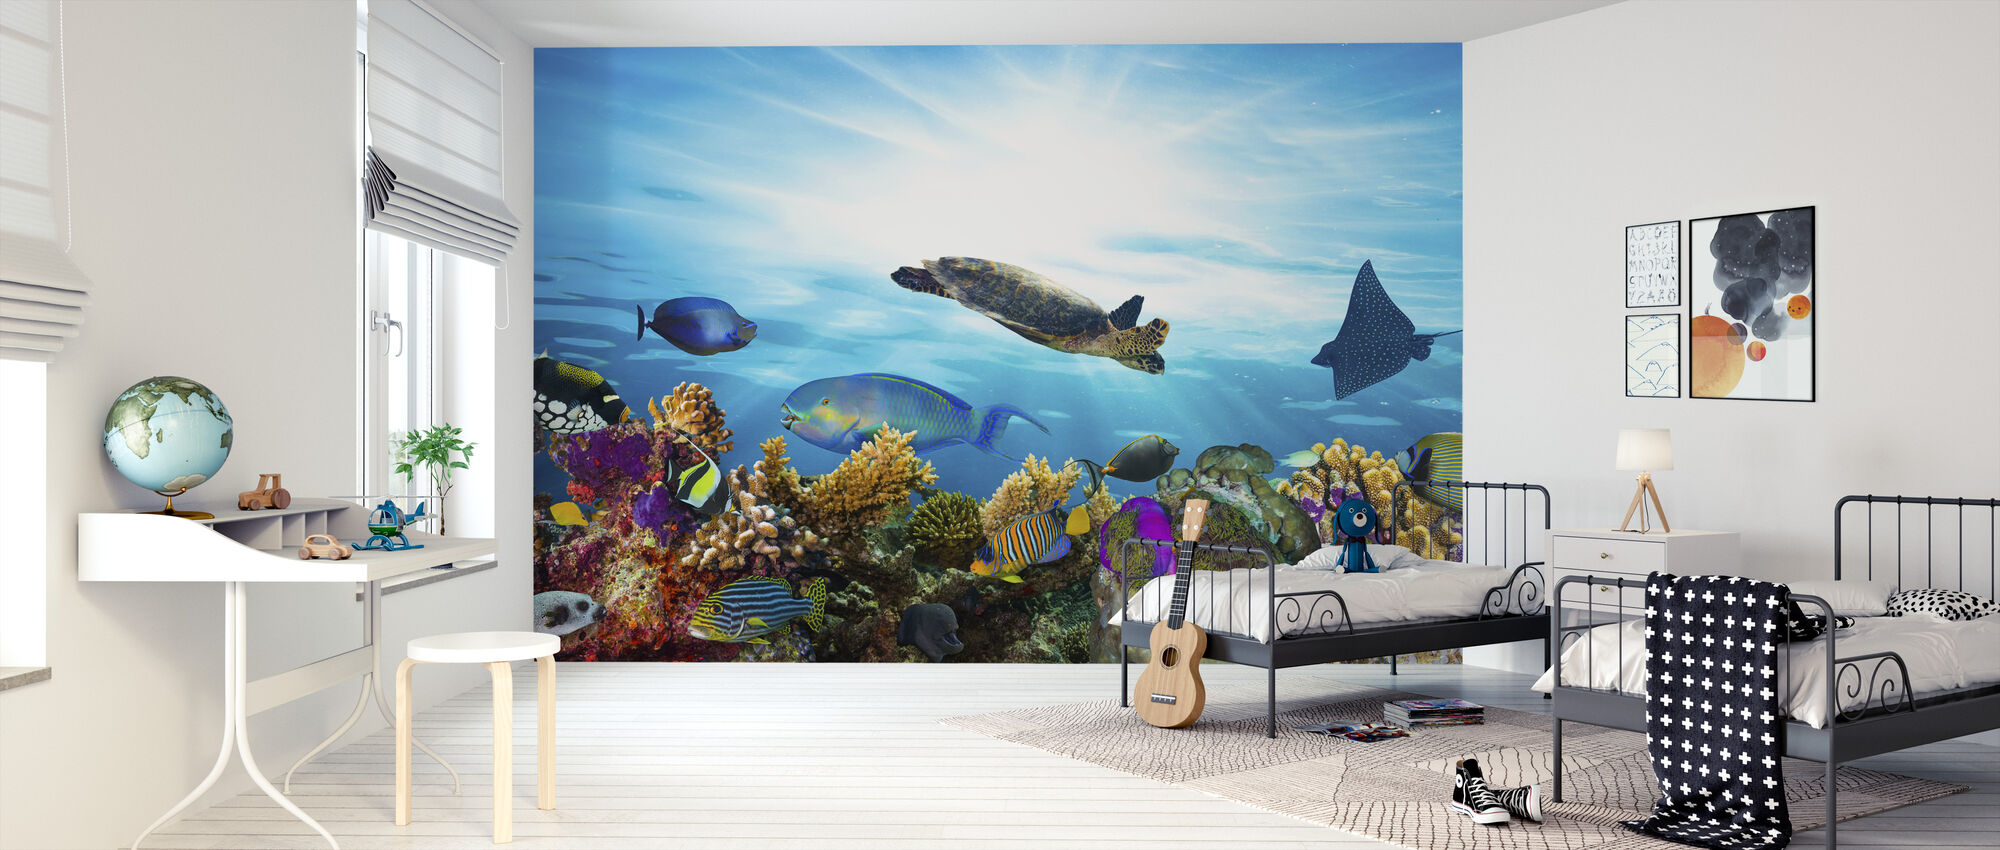 Coral Reef Panorama - Wallpaper - Kids Room